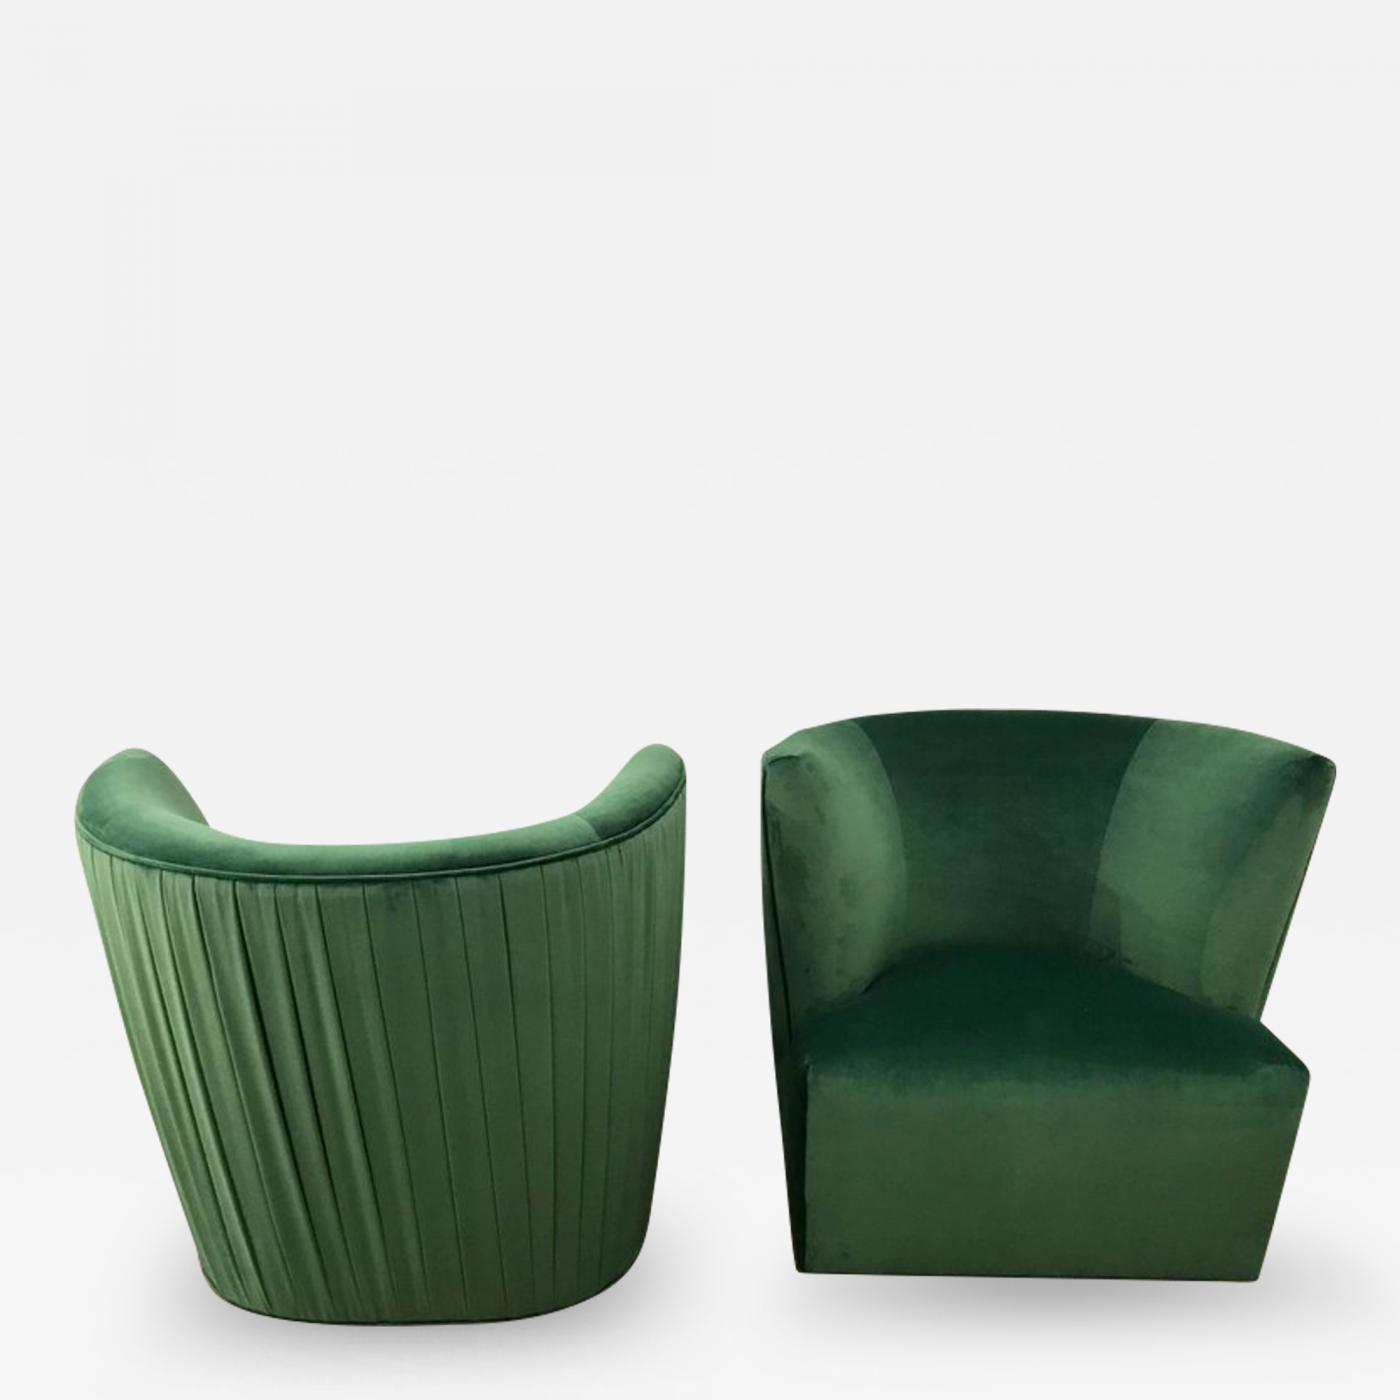 Listings / Furniture / Seating / Lounge Chairs · A Rudin ... & A. Rudin - 20th Century Modern Pr of A. Rudin Emerald Velvet Swivel ...